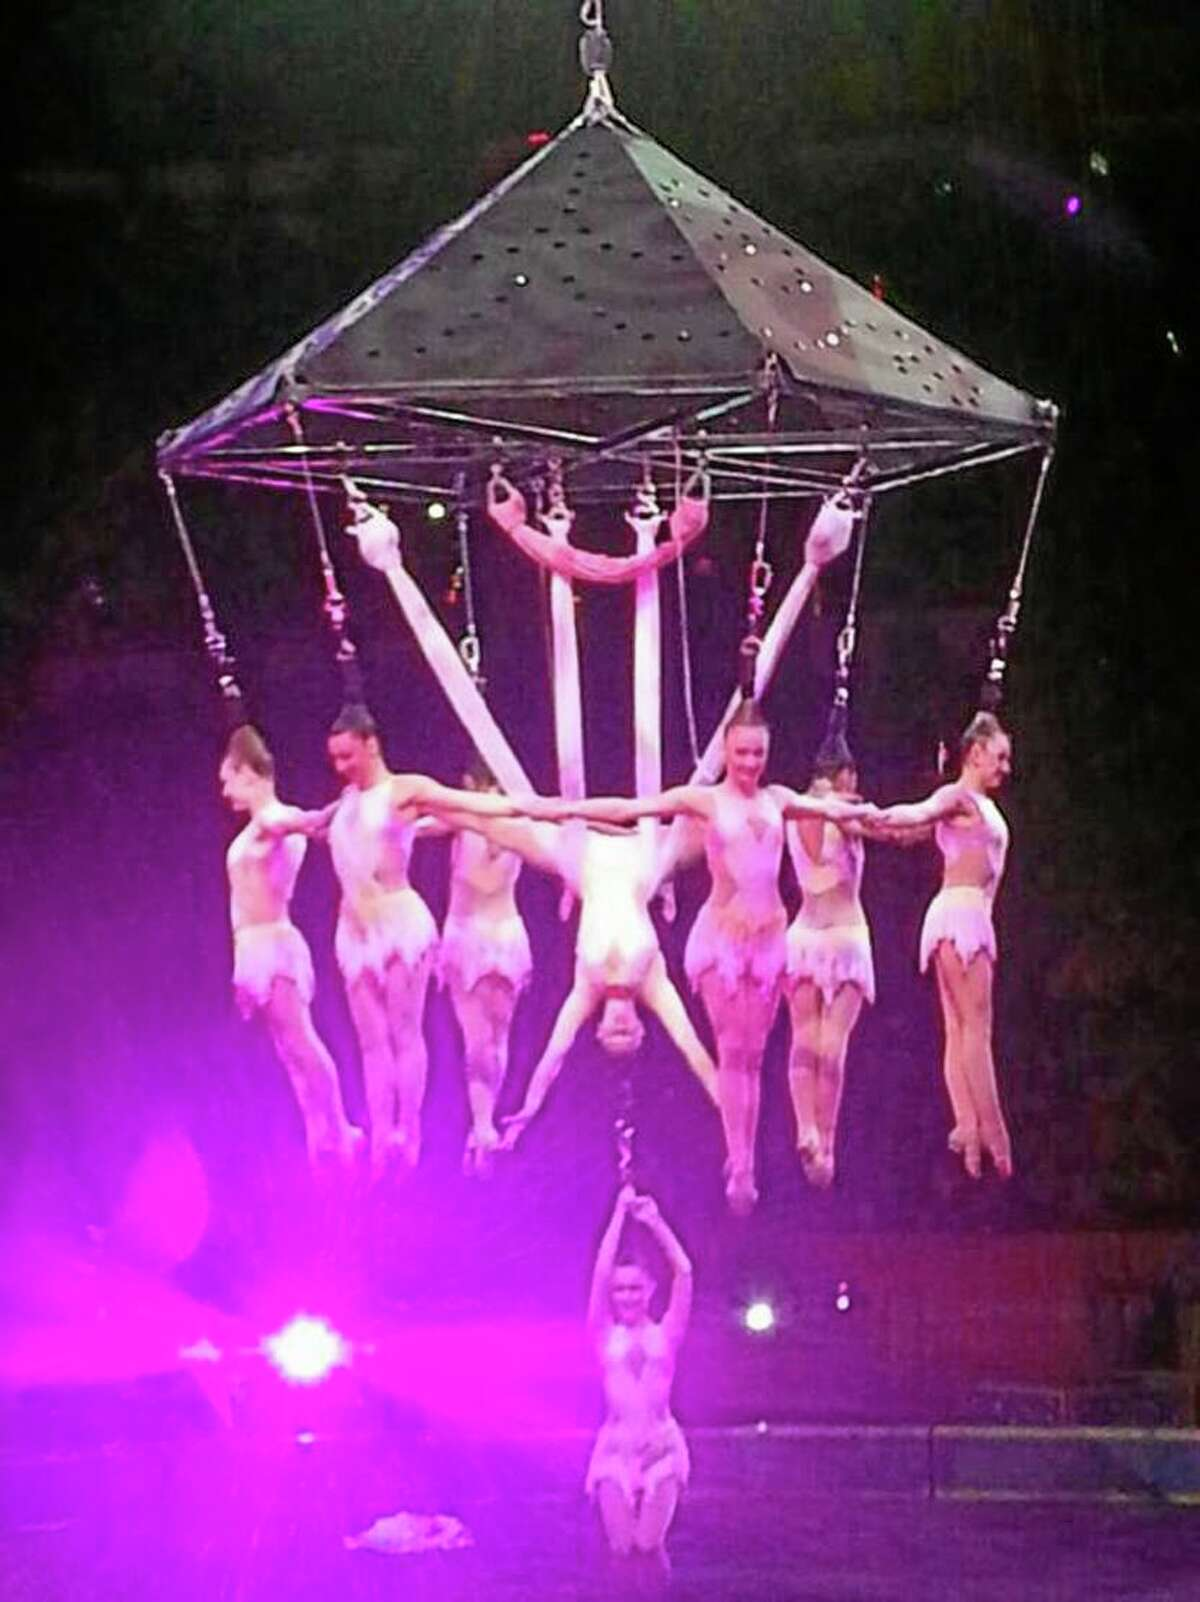 In this photo provided by Frank Caprio, performers hang during an aerial hair-hanging stunt at the Ringling Brothers and Barnum and Bailey Circus on May 2, 2104 in Providence, R.I. A platform collapsed during an aerial hair-hanging stunt at the 11 a.m. performance Sunday, May 4, sending eight acrobats plummeting to the ground.